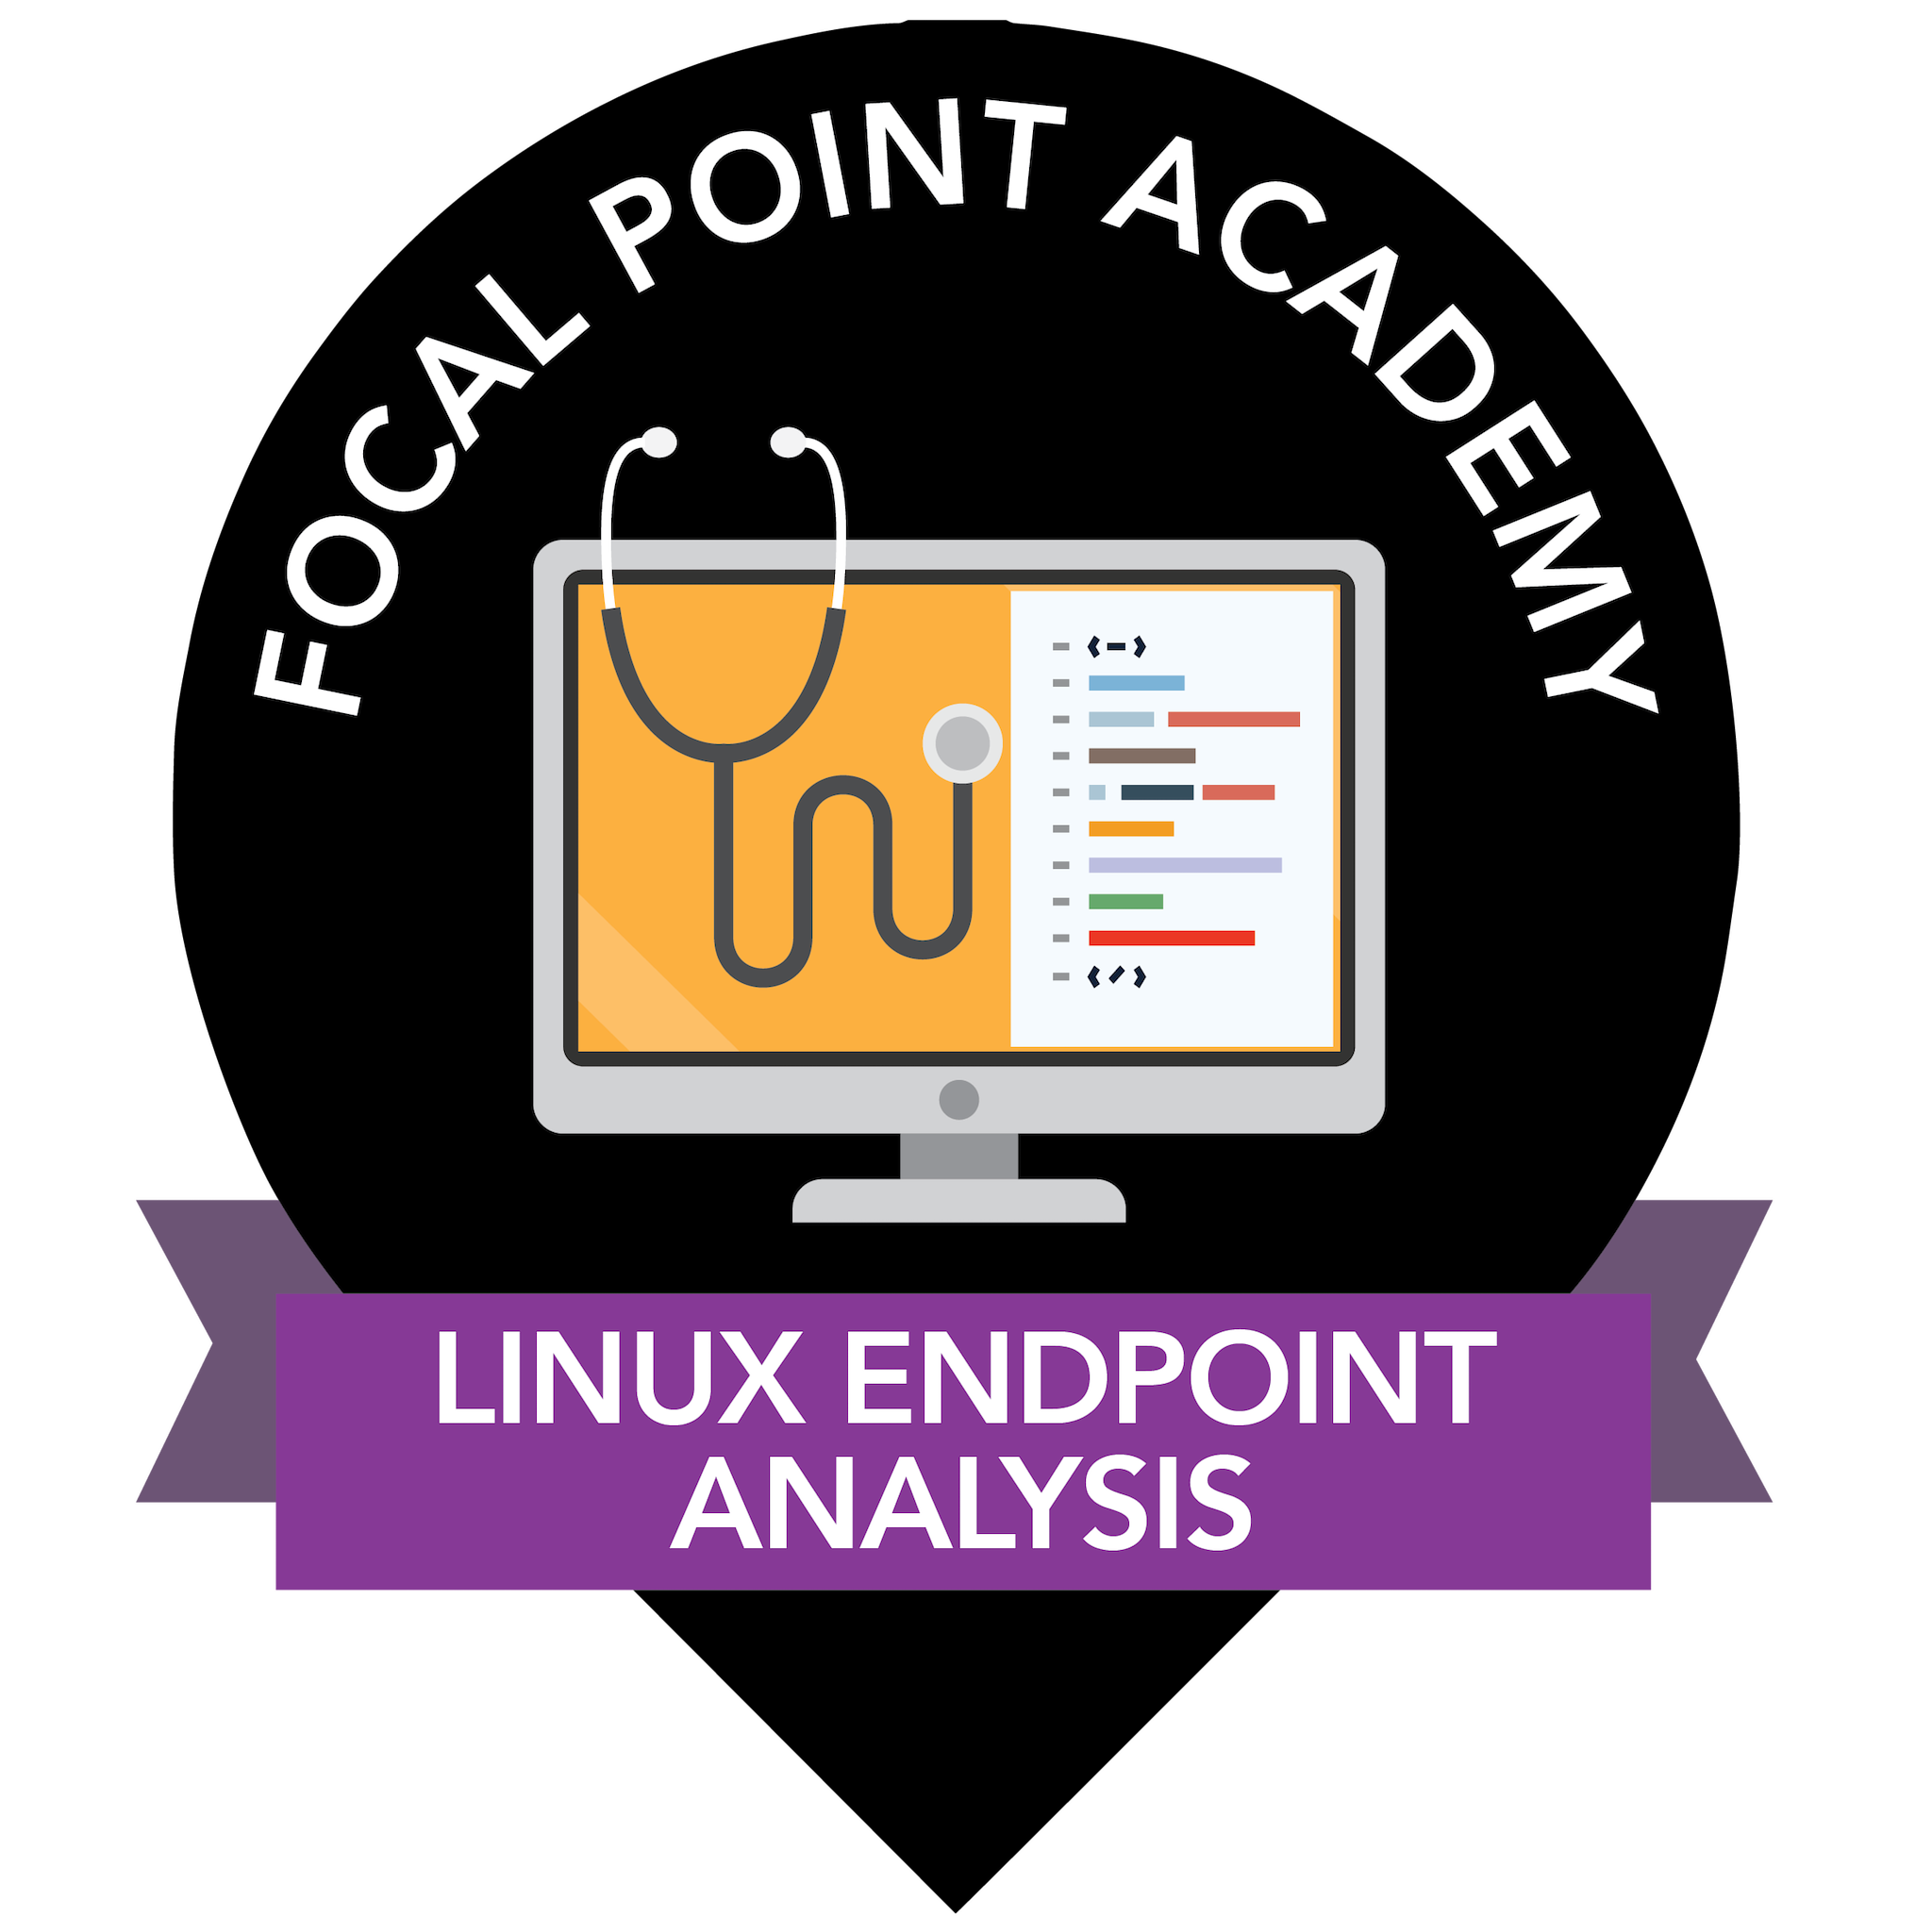 Live Linux Endpoint Analysis